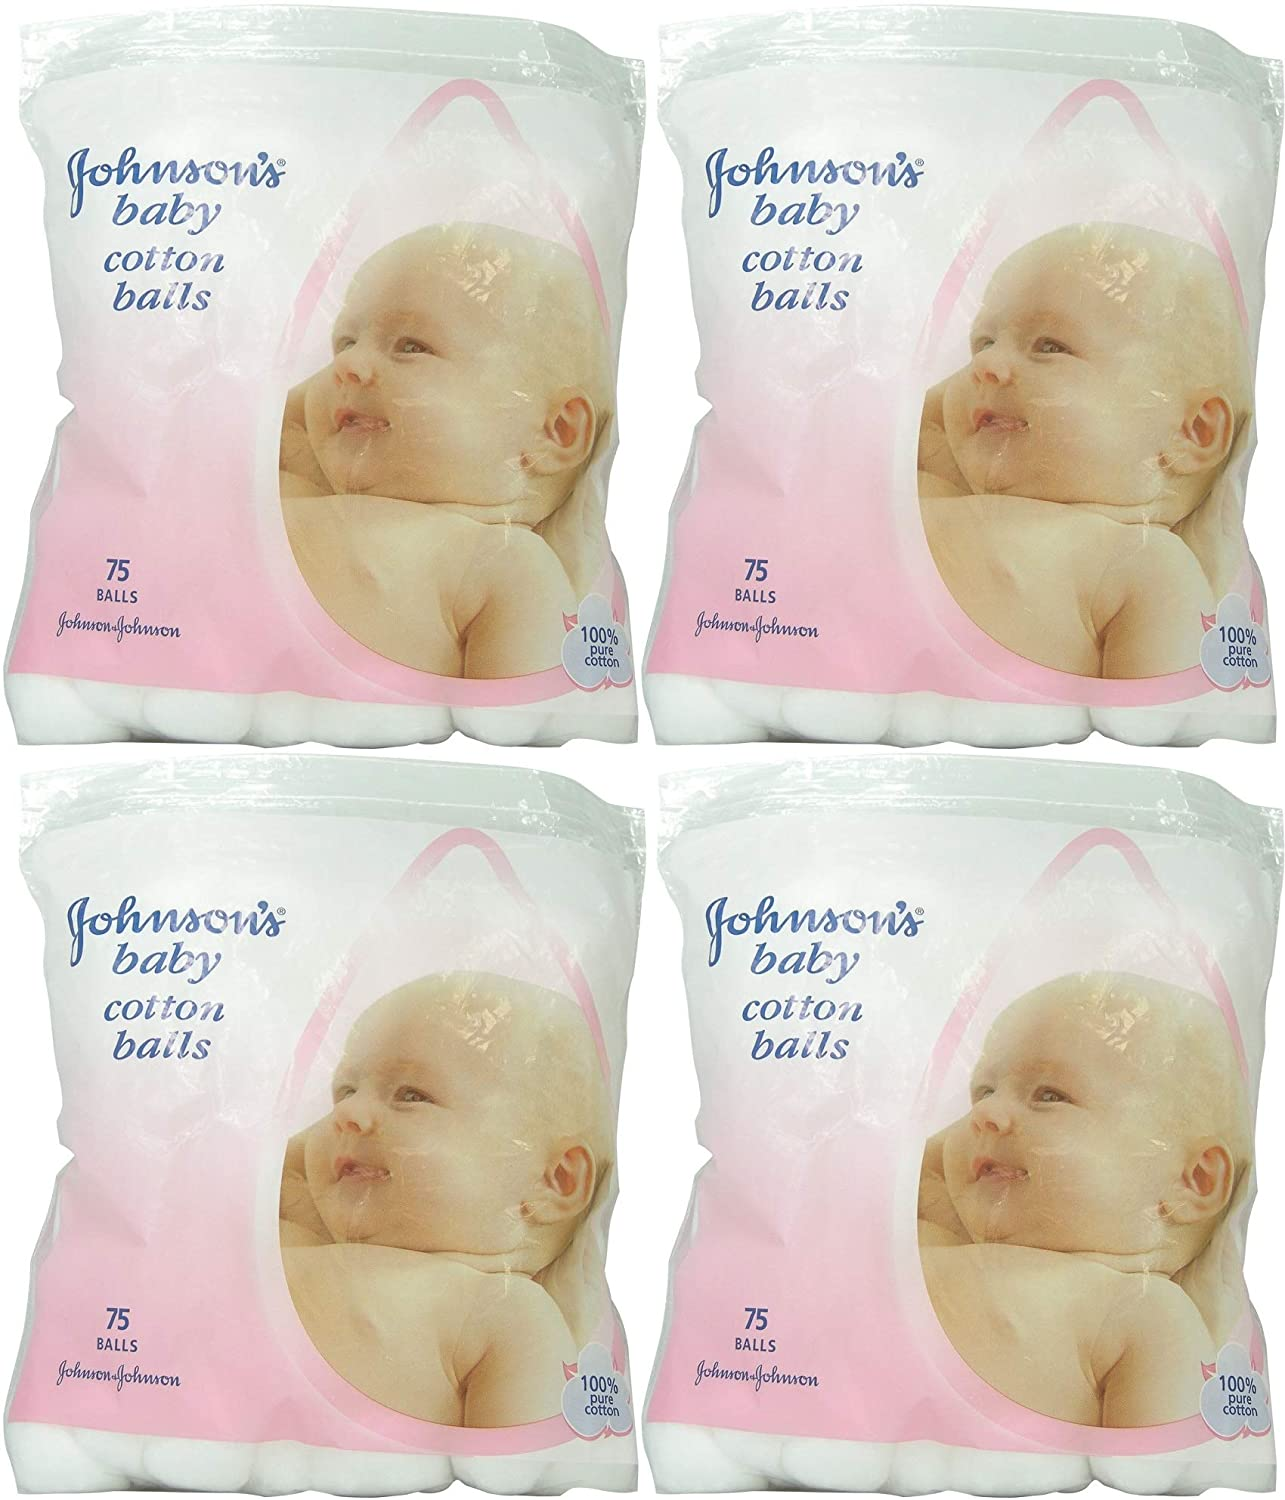 Johnson's baby cotton balls 75pack - Pack of 4